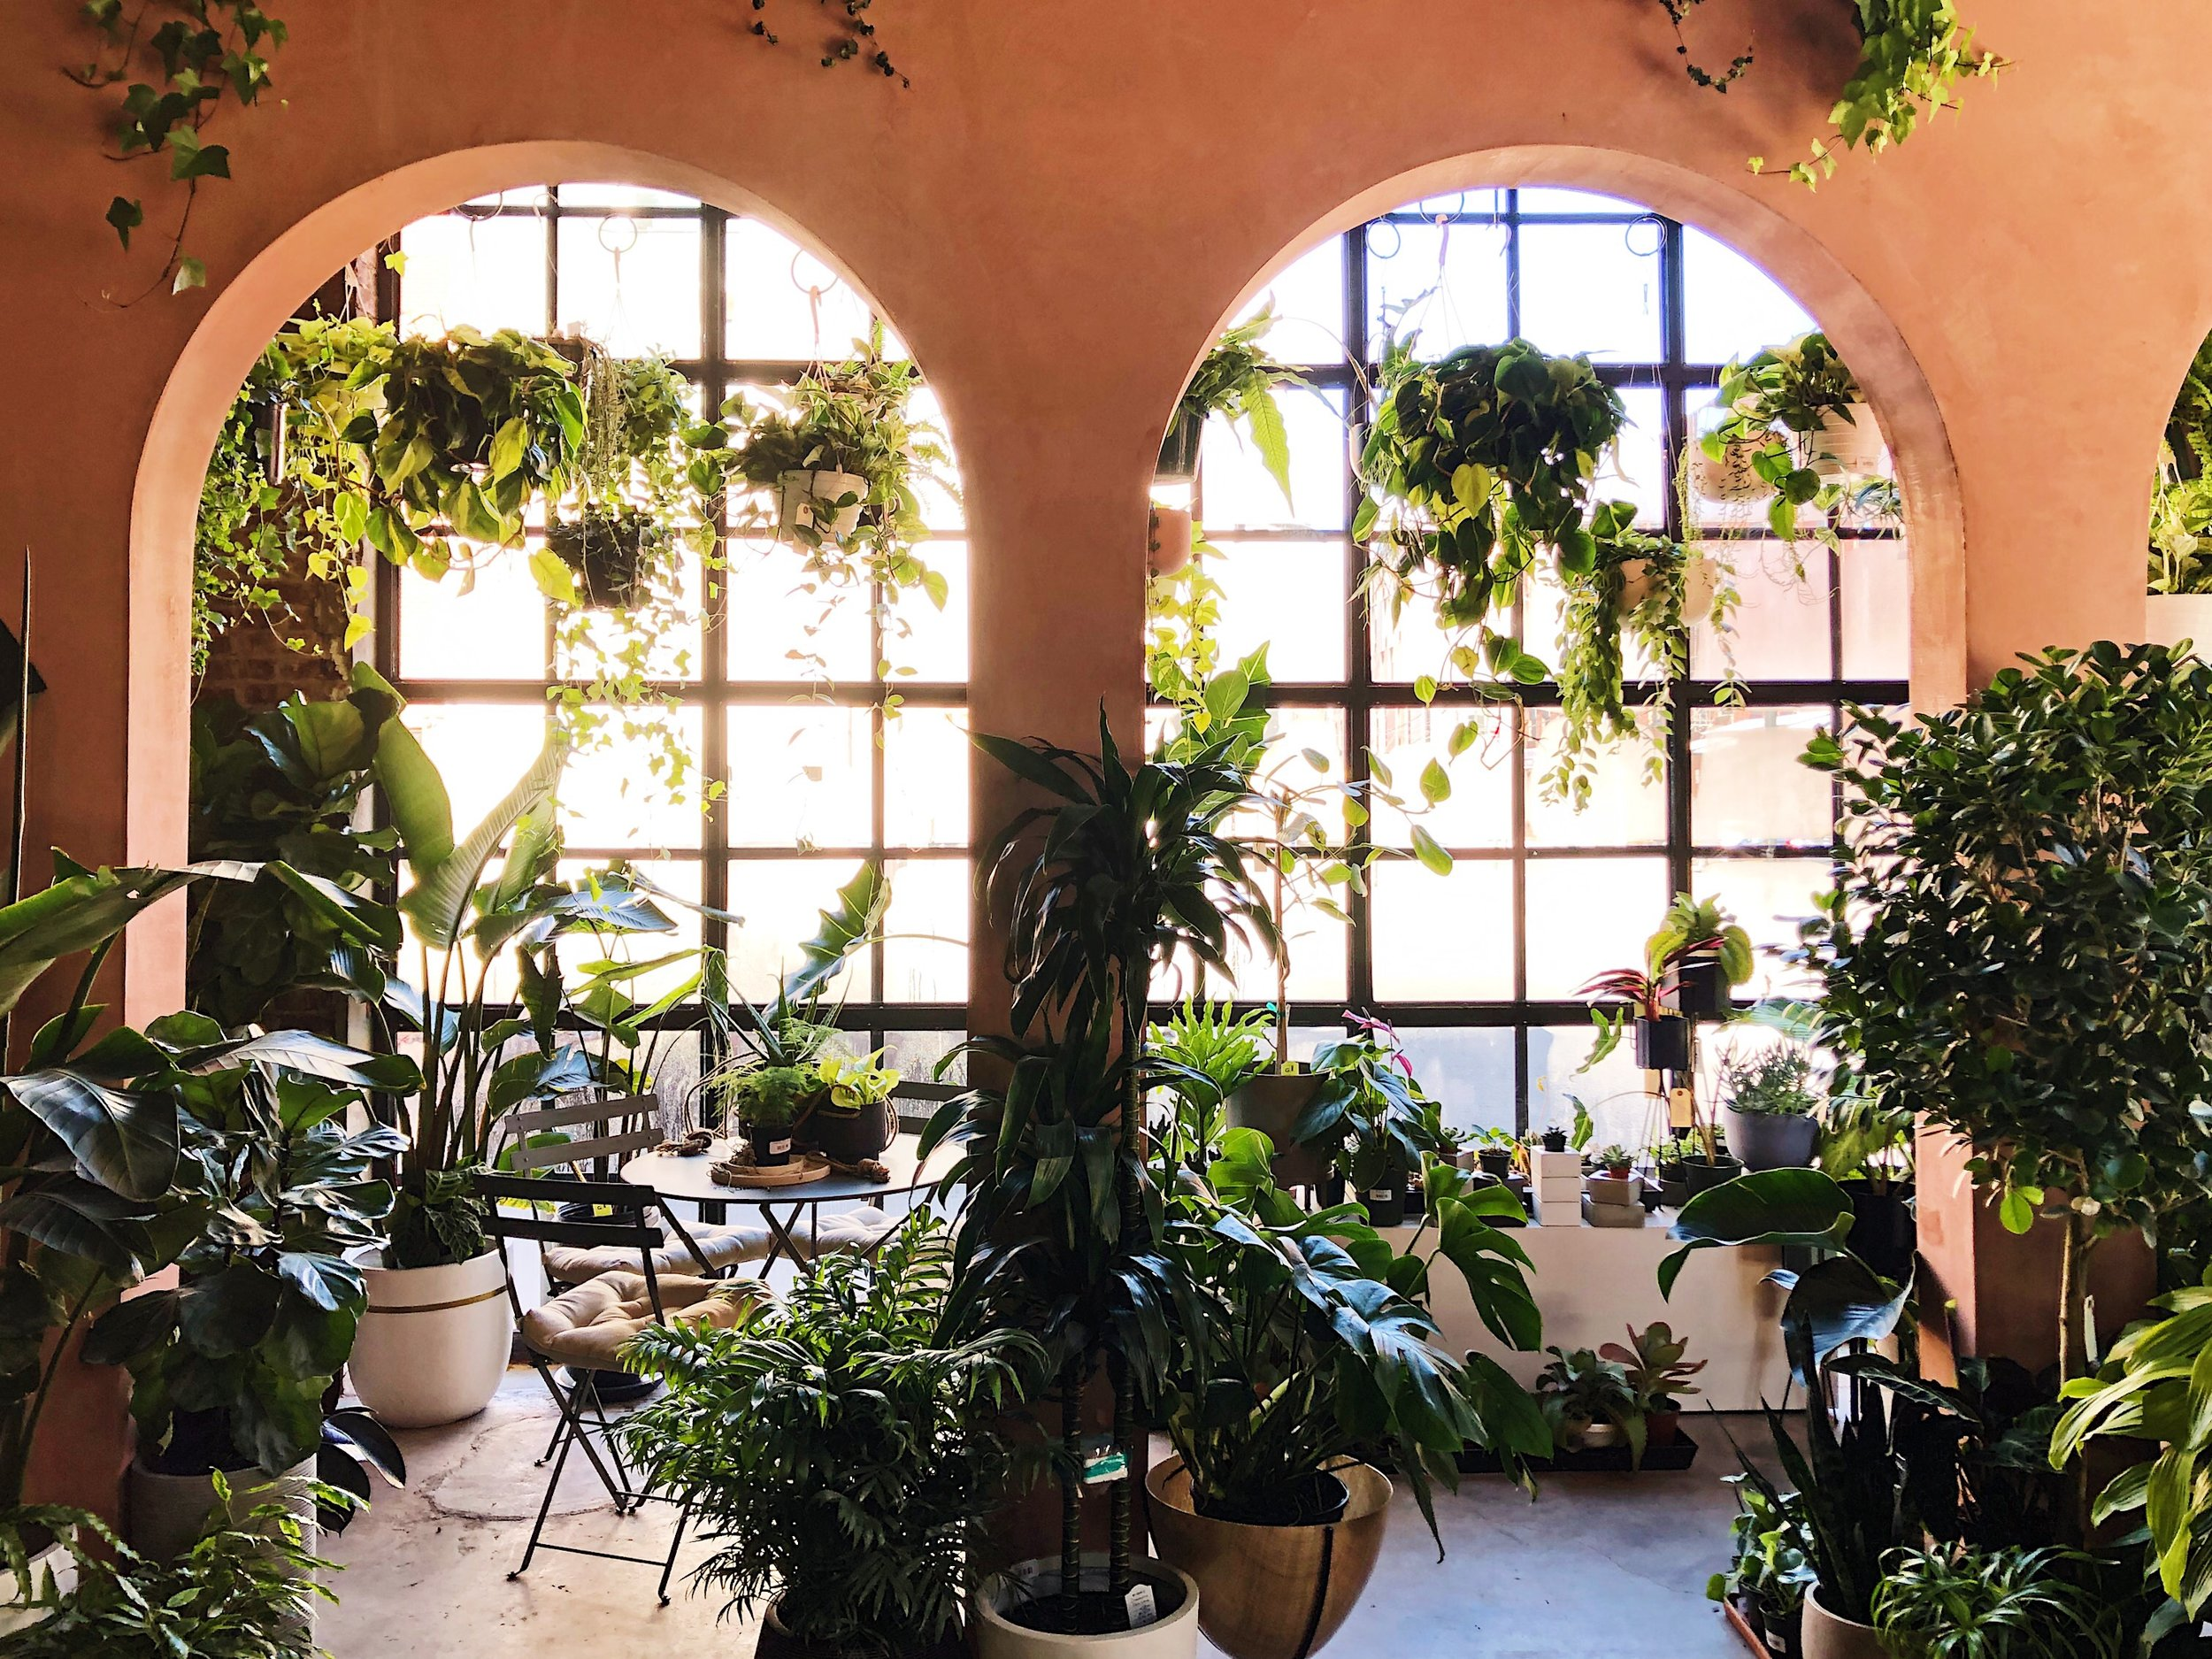 Greenery Unlimited in Greenpoint, Brooklyn.  Ten plant shops in NYC